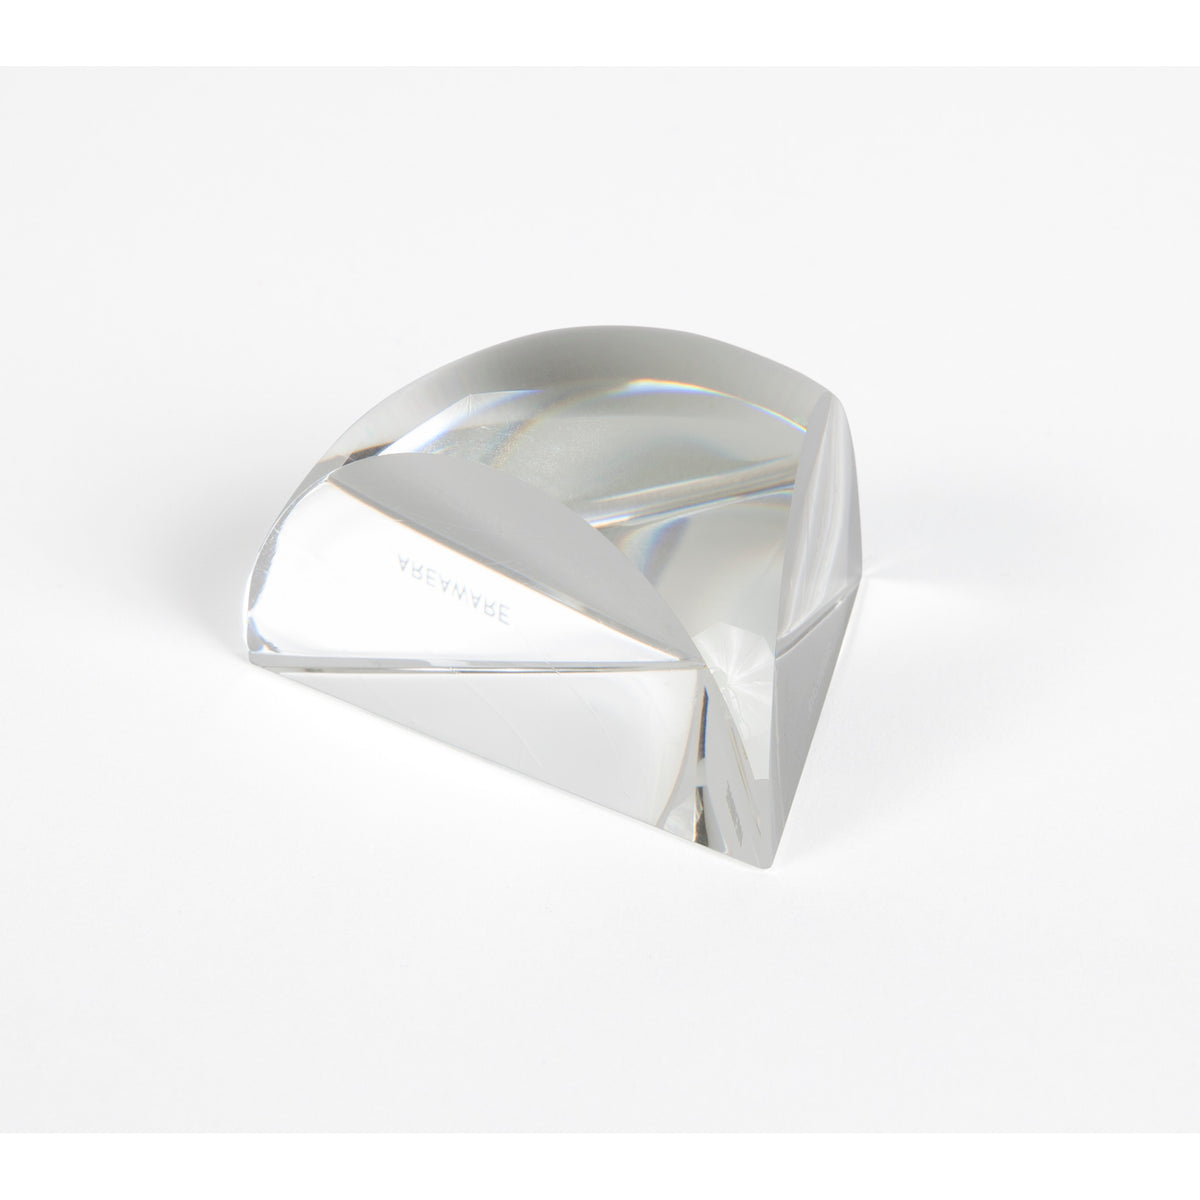 Small Prism Magnifier Desk Accessory | Getty Store